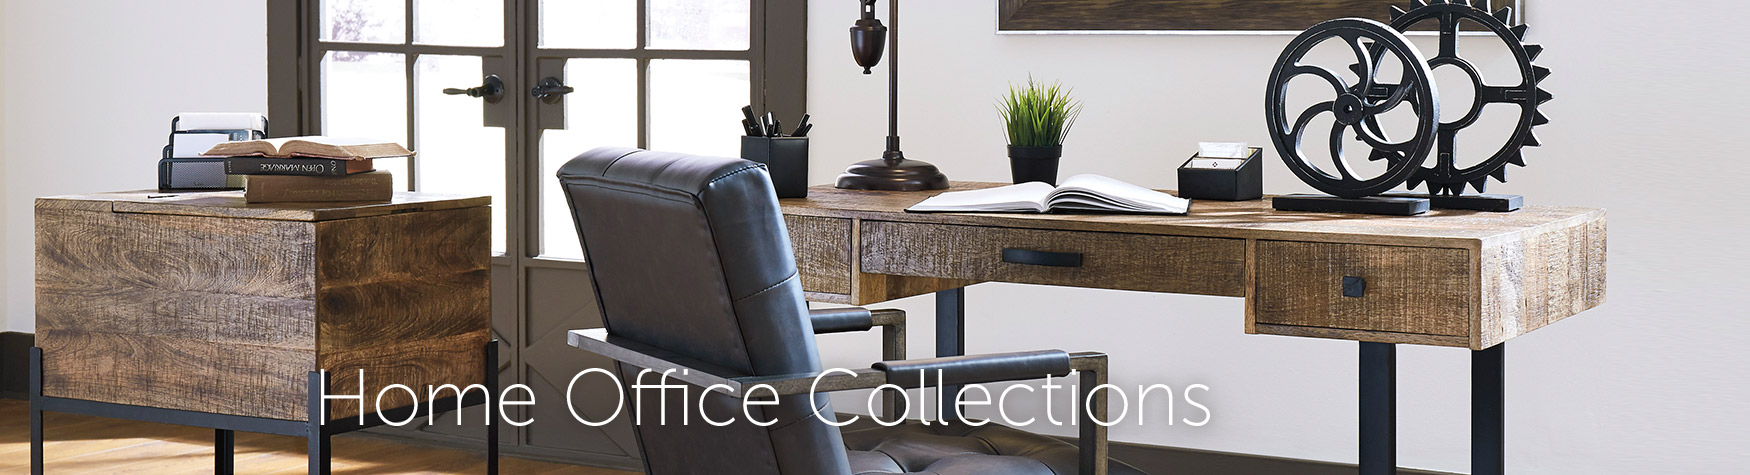 home-office-collections-banner.jpg